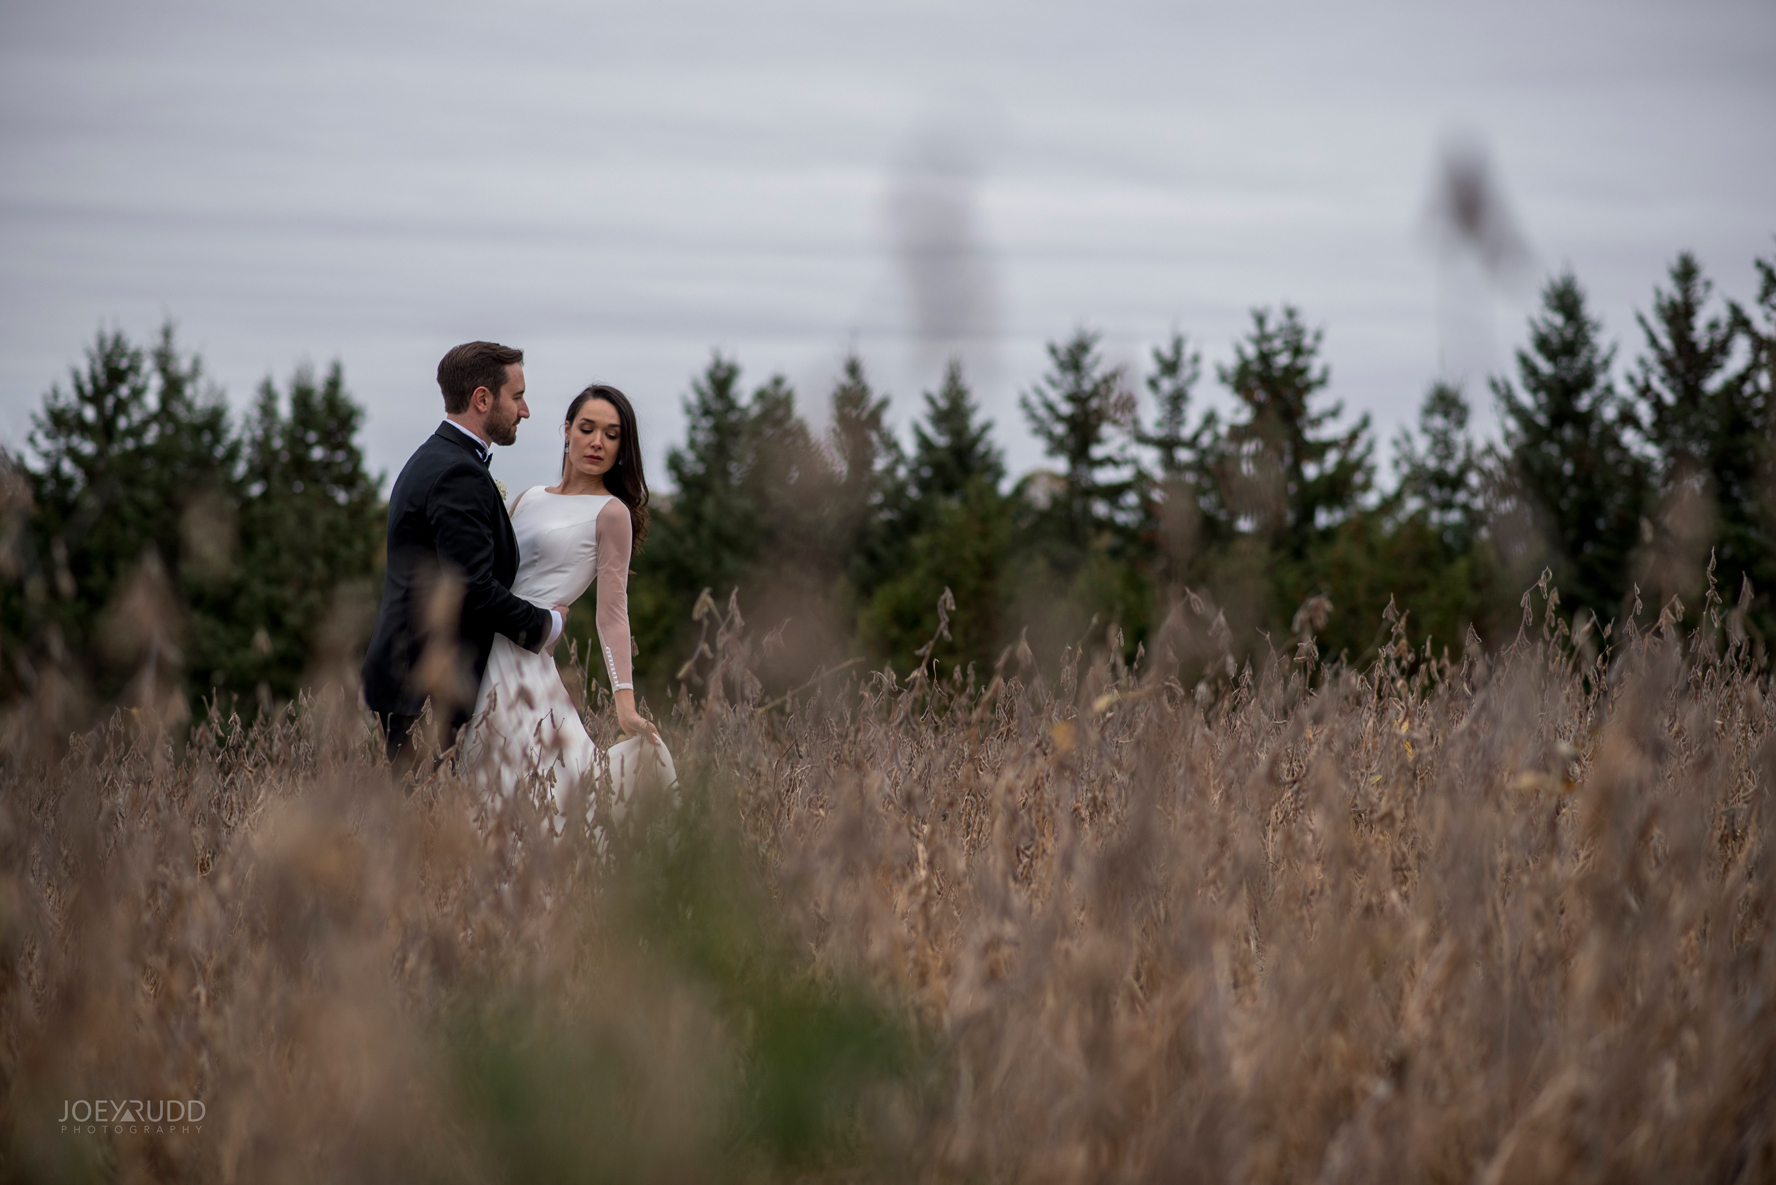 2018_10_07---Aksana-&-Mark-714TopRight.jpgEvermore Wedding, Evermore Wedding and Events, Ottawa Wedding, Almonte Wedding, Ottawa Photographer, Wedding Photography, Wedding Photographer, Joey Rudd Photography, Farm Wedding, Rustic Wedding, Barn Wedding Venue, Wedding Venue, Ottawa Wedding Venue, Almonte Riverside Inn, Candid, field wedding photo, posing the bride and groom